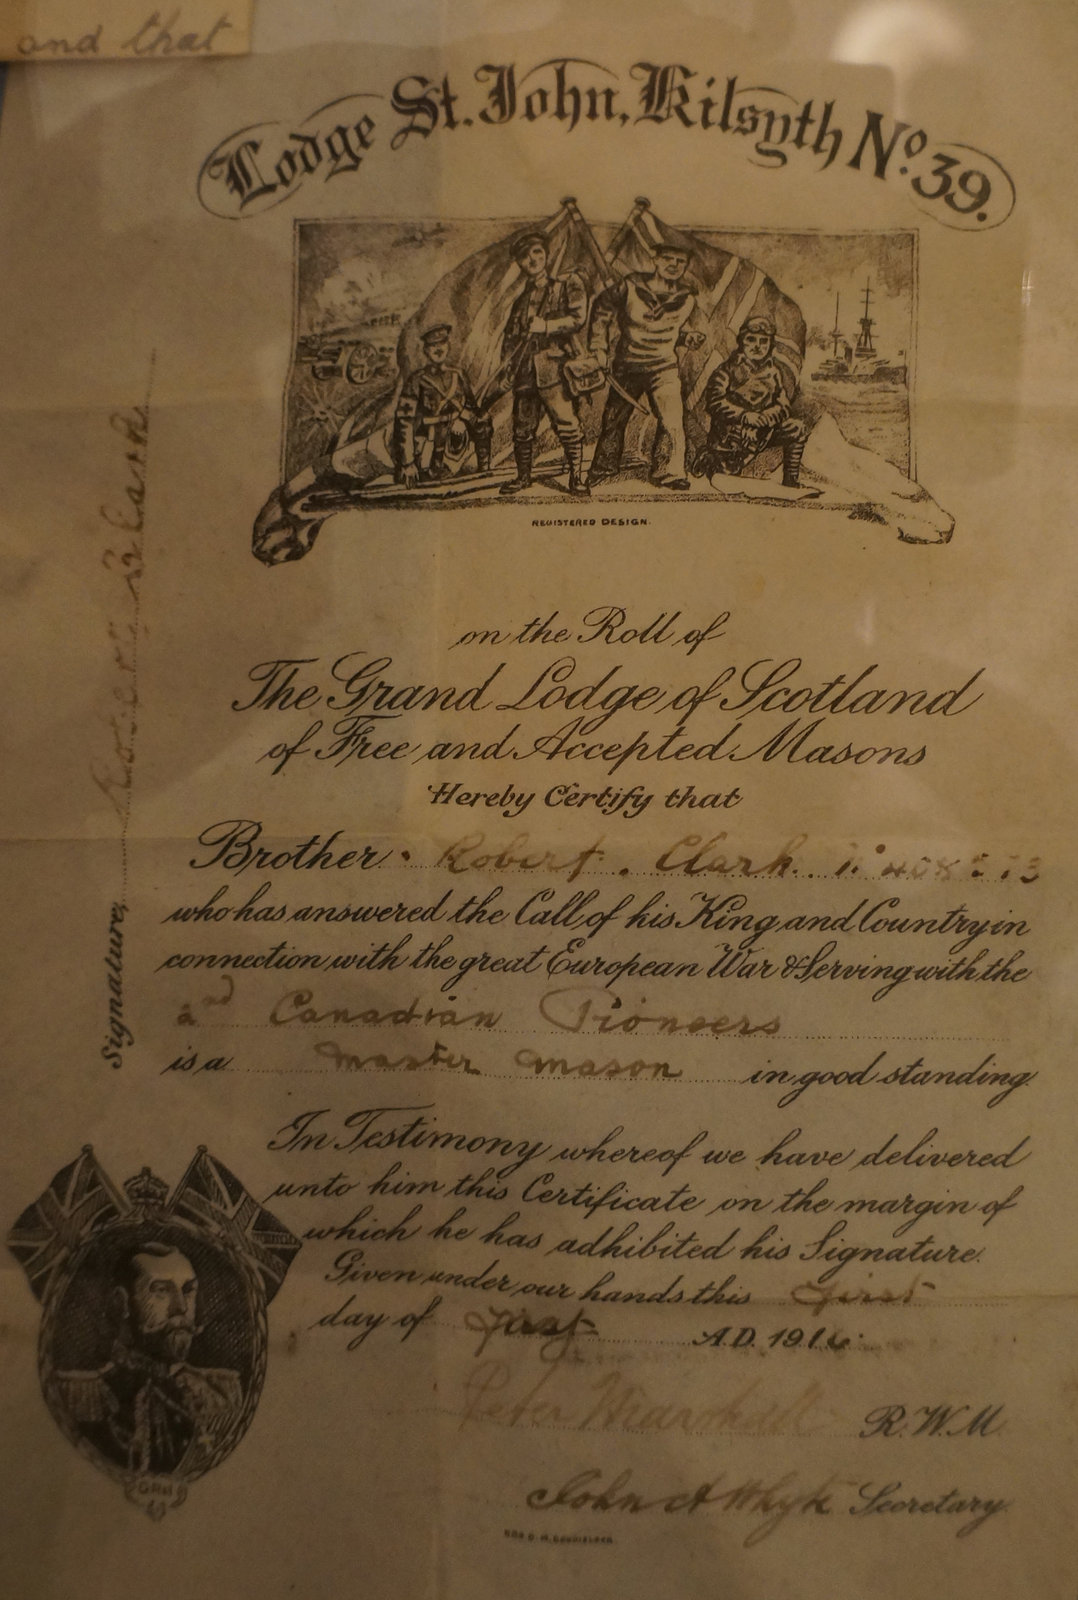 Masonic identity pass issued to soldier in World War I